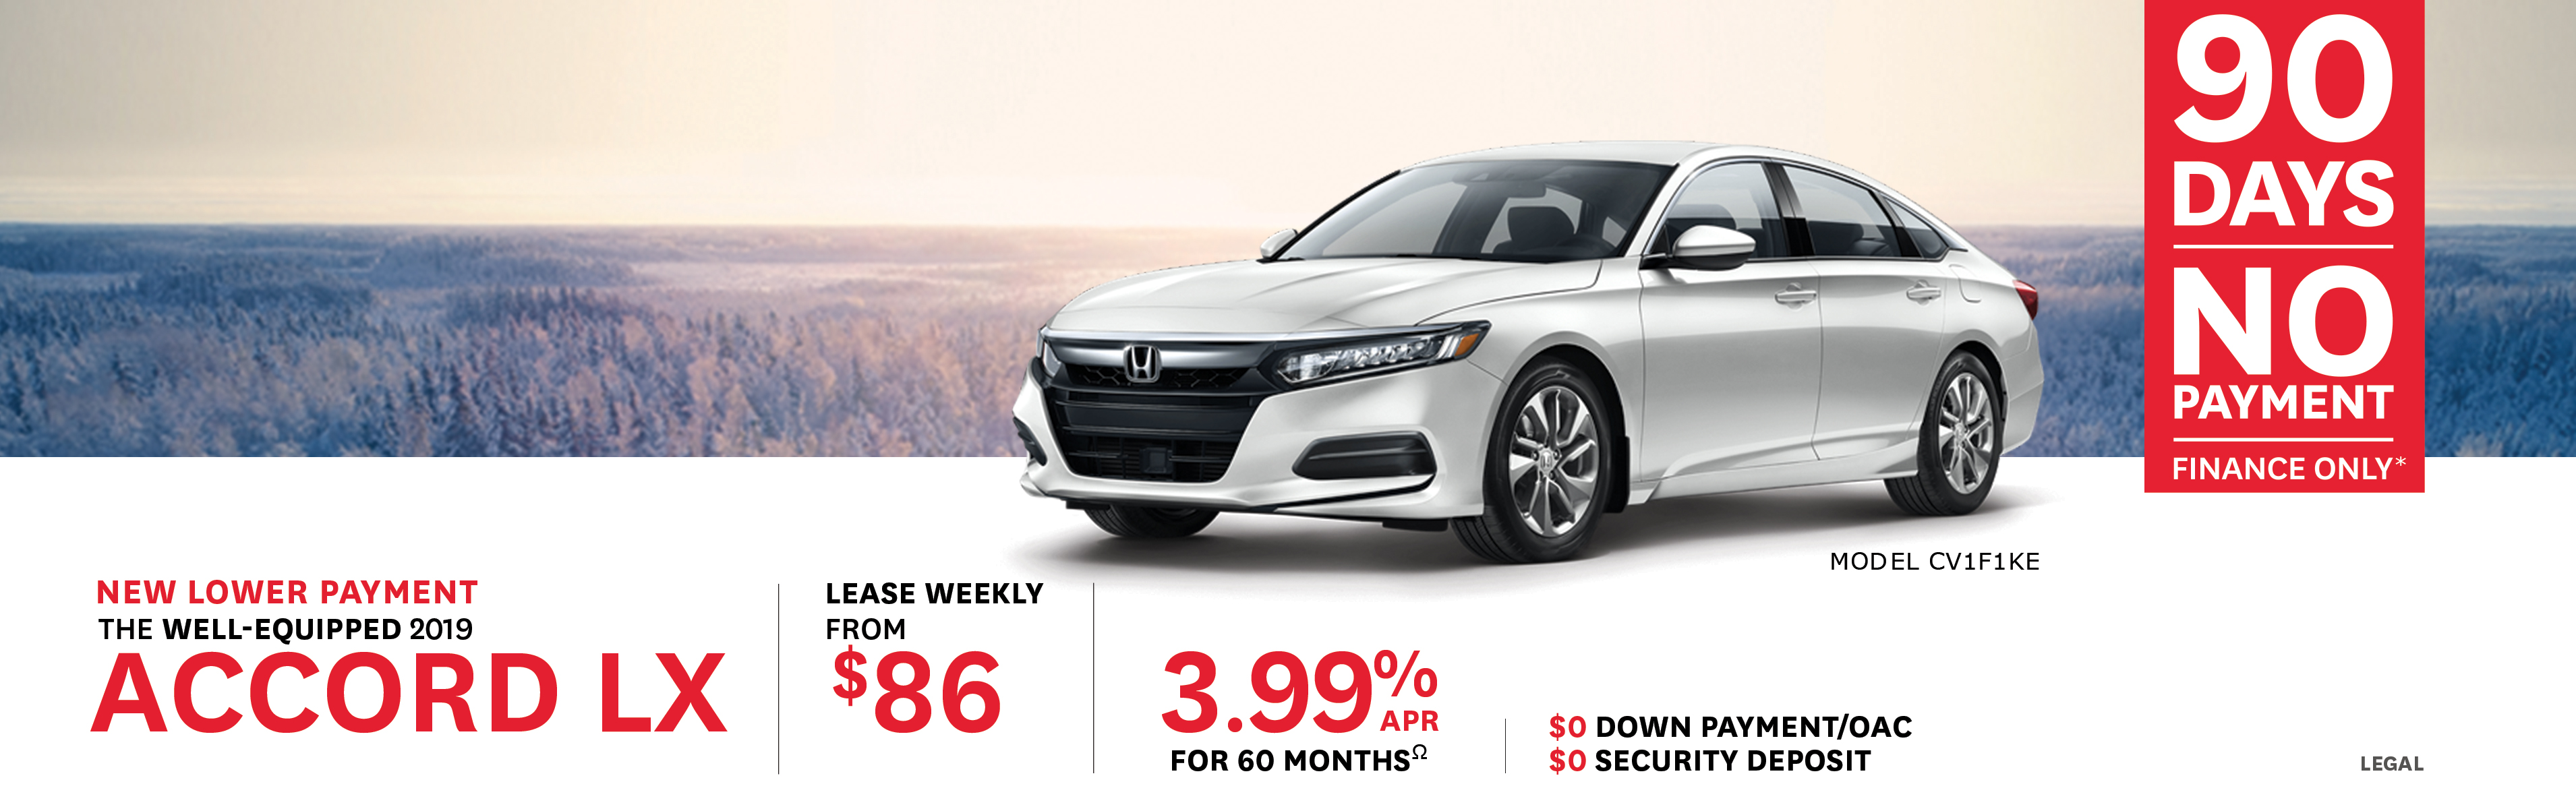 2019 Feb Honda Offer - Accord